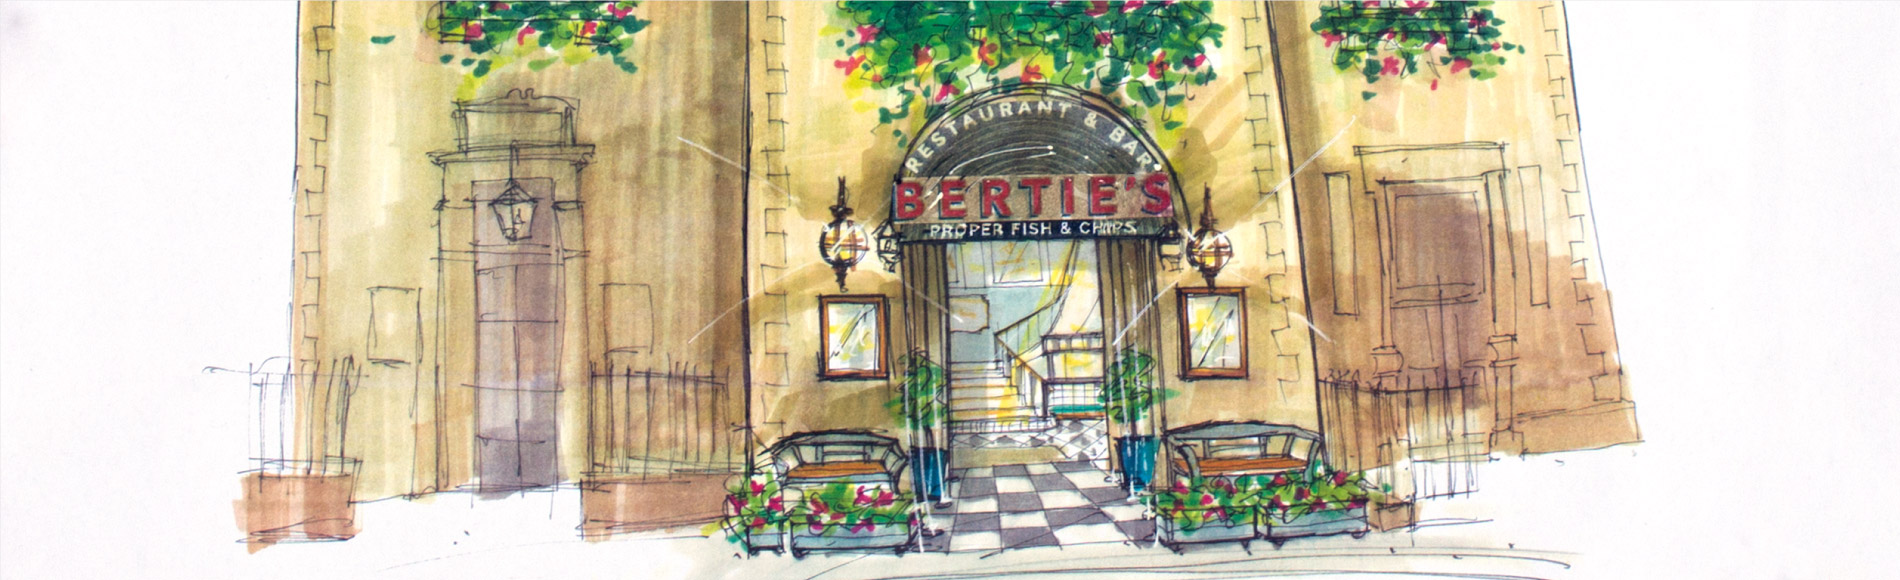 berties-fish-adn-chips-restaurant-edinburgh-coming-soon2